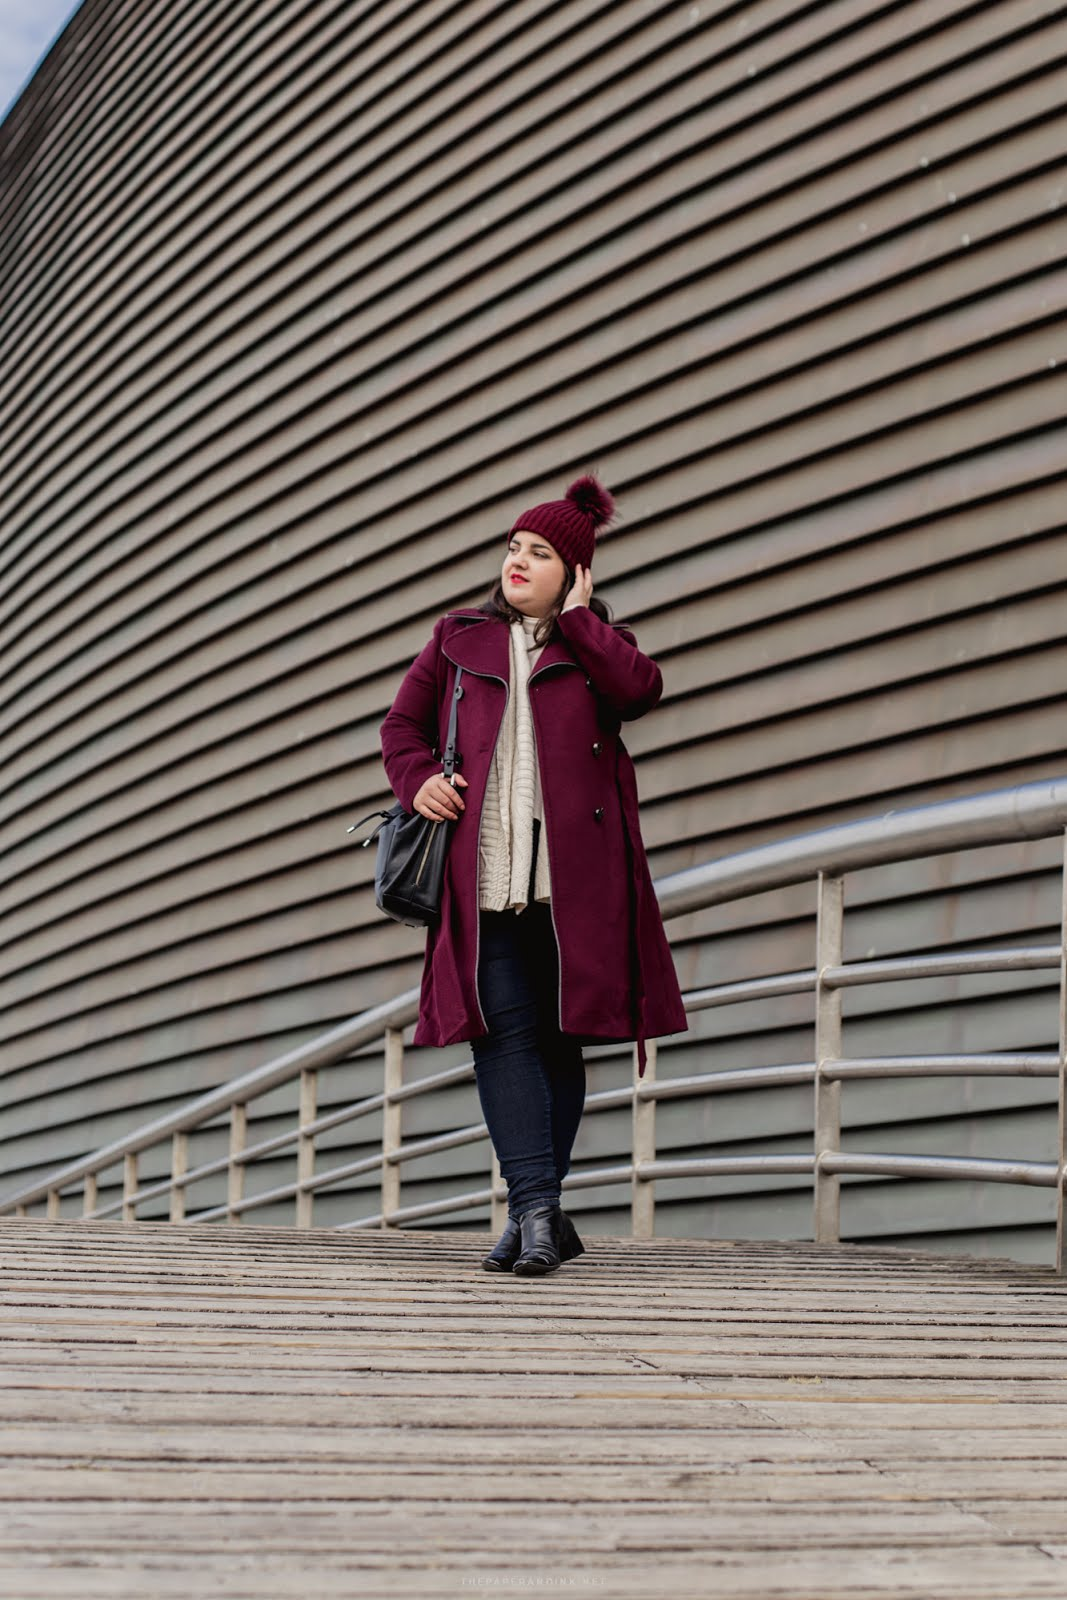 A burgundy winter coat and beanie making up for the perfect Winter outfit. All about fashion, style and comfort.